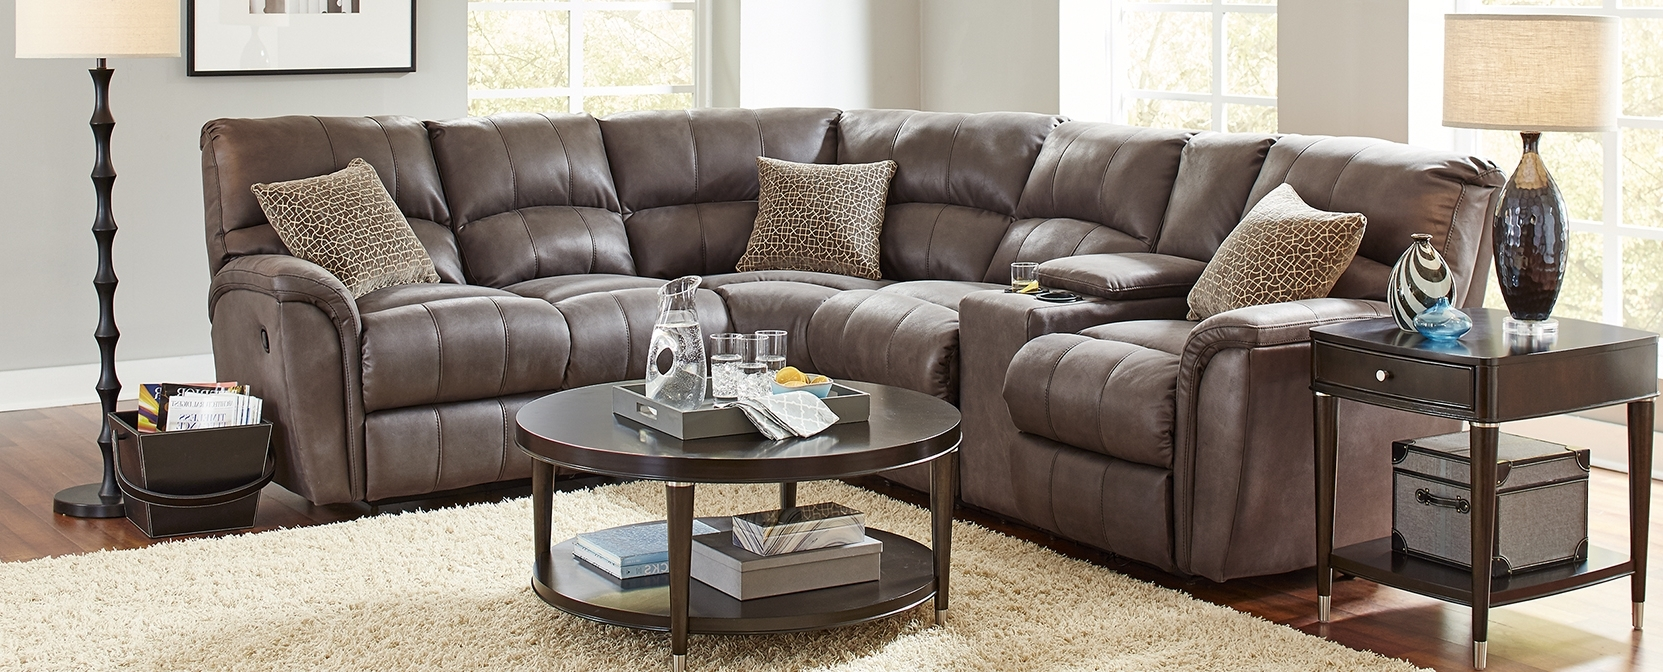 Most Up To Date Lane Furniture Sofas Intended For Sectional Couches (View 5 of 15)